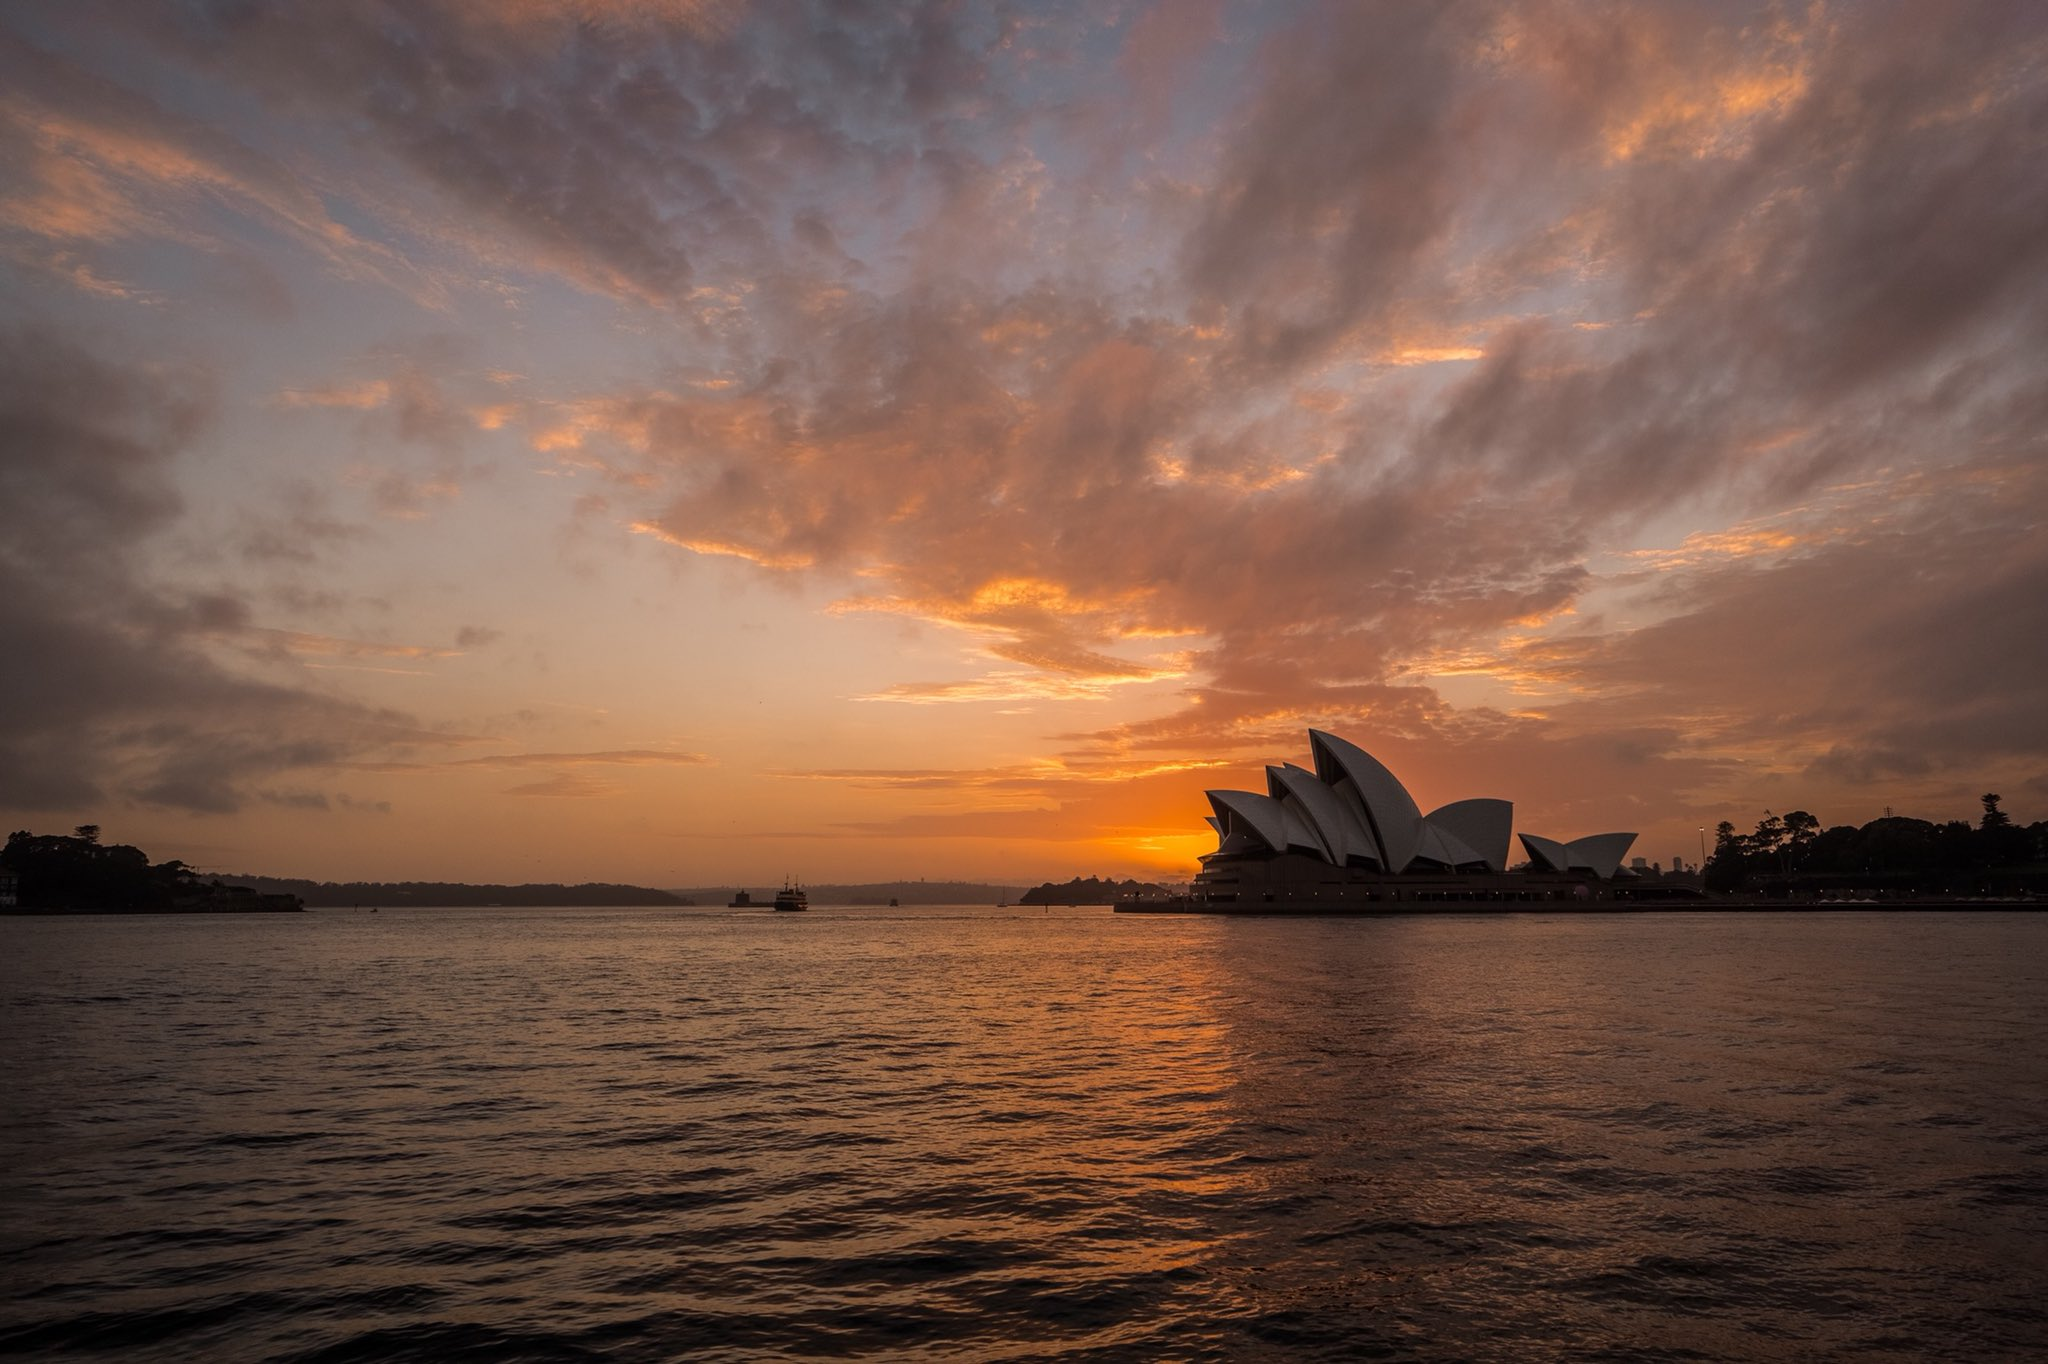 Where else would I be on my first morning back in town? @SydOperaHouse https://t.co/EeT3gF7RSW